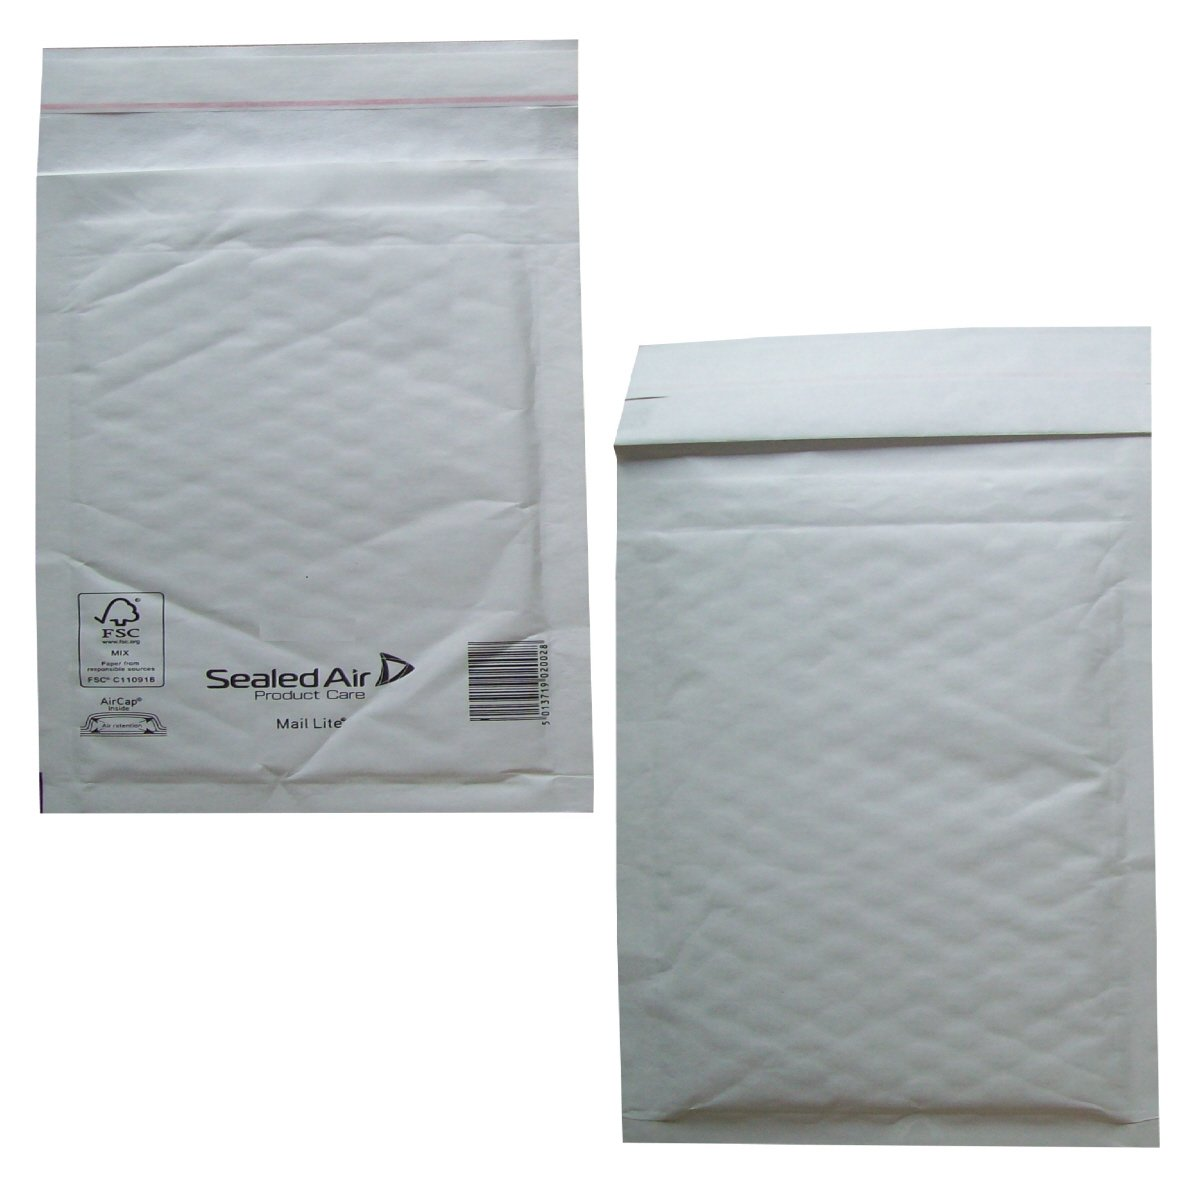 50 Large K/7 Size Mail Lite White Padded Envelopes Mailers - Peel + Seal Bubble Bags - 350 x 470mm / 13.75 x 18.5' Sealed Air Postal Packing Mailing Shipping Postage Posting Self Seal Cushioned Protective Packaging